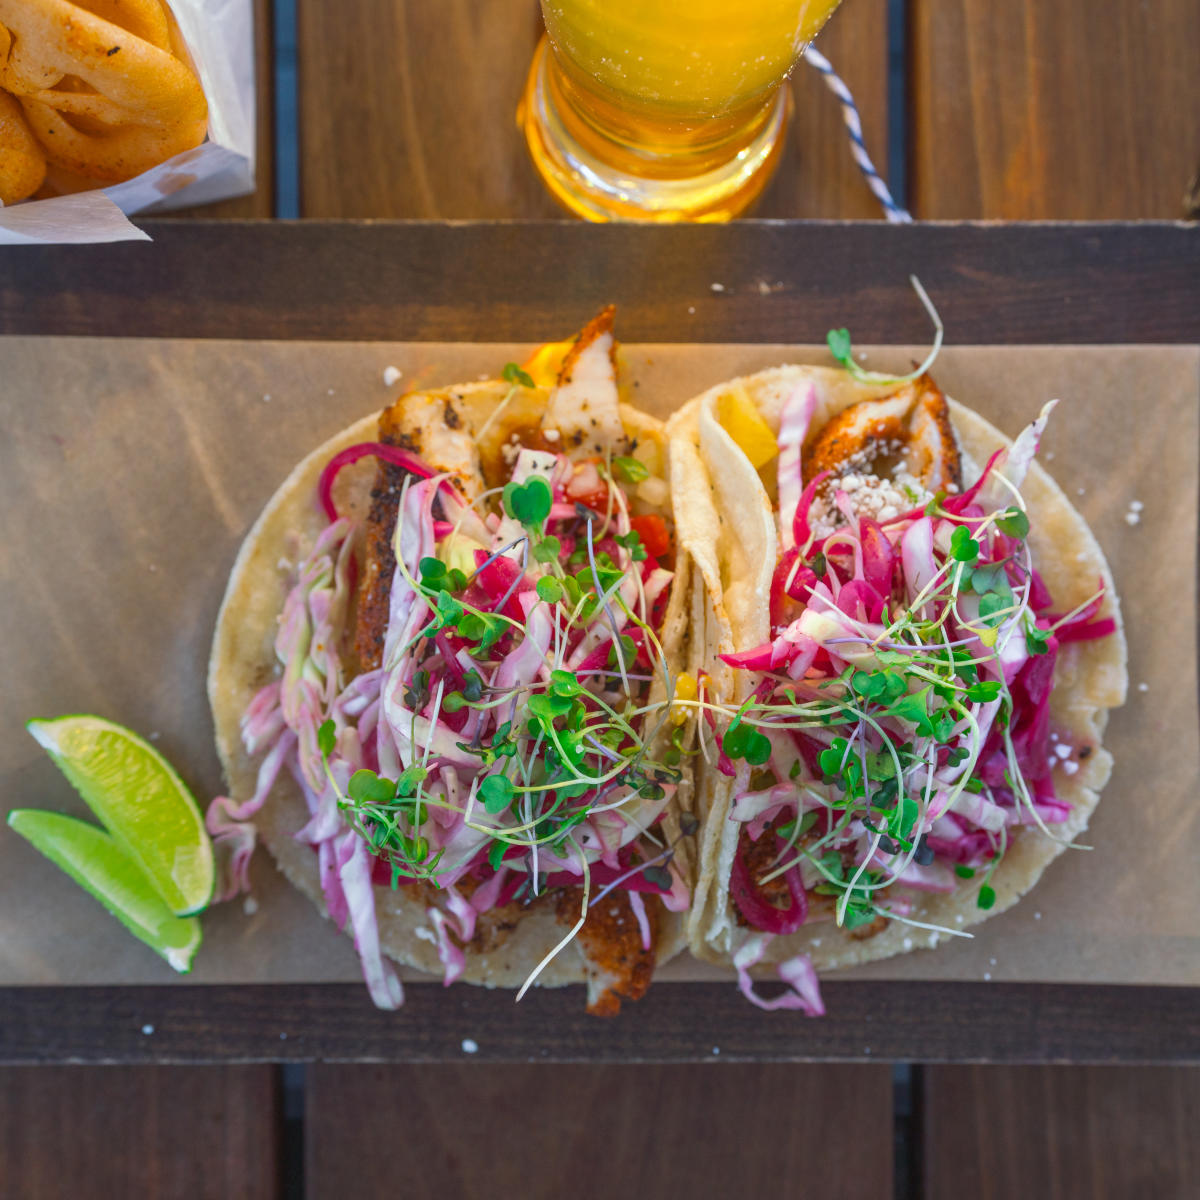 Tacos and beer on table